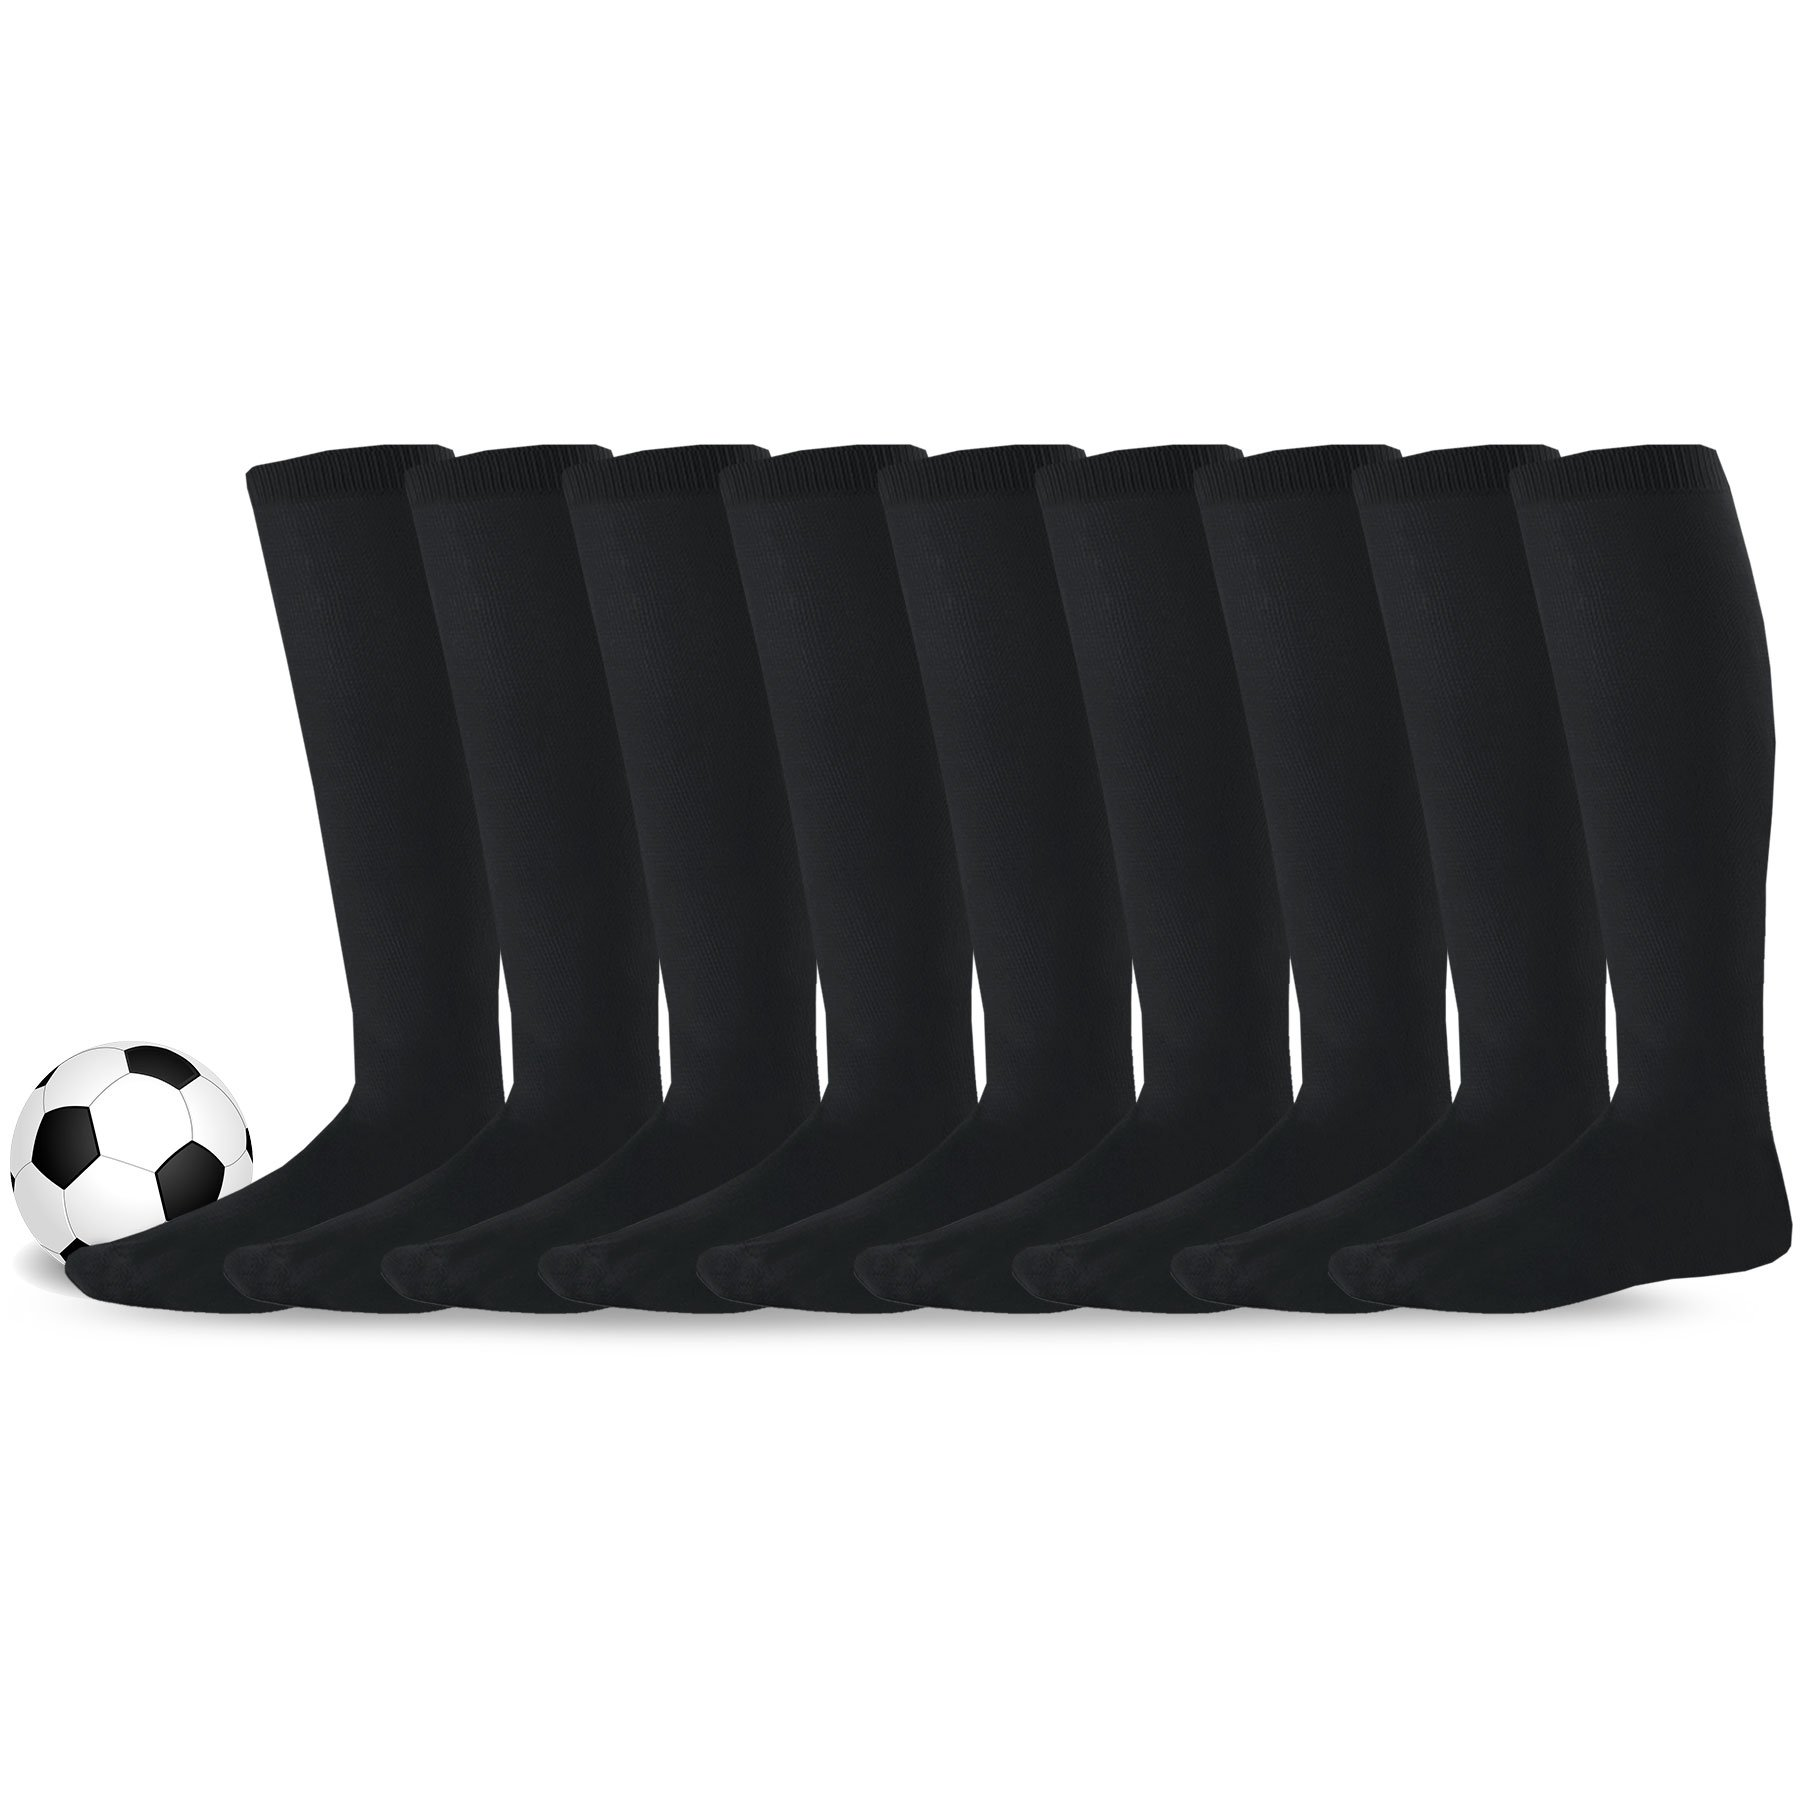 Soxnet Acrylic Unisex Soccer Sports Team Cushion Socks 9 Pack (Medium (9-11), Black)